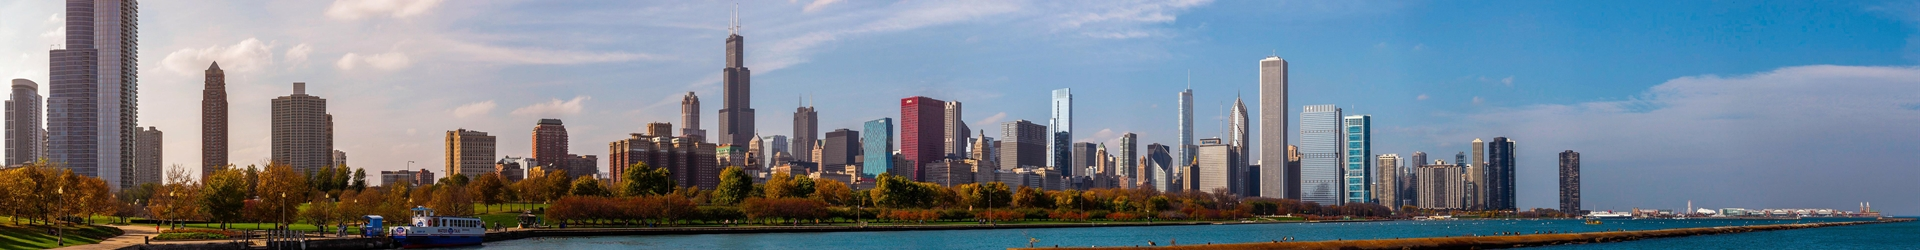 Chicago_Skyline-Tyler_Sichelski